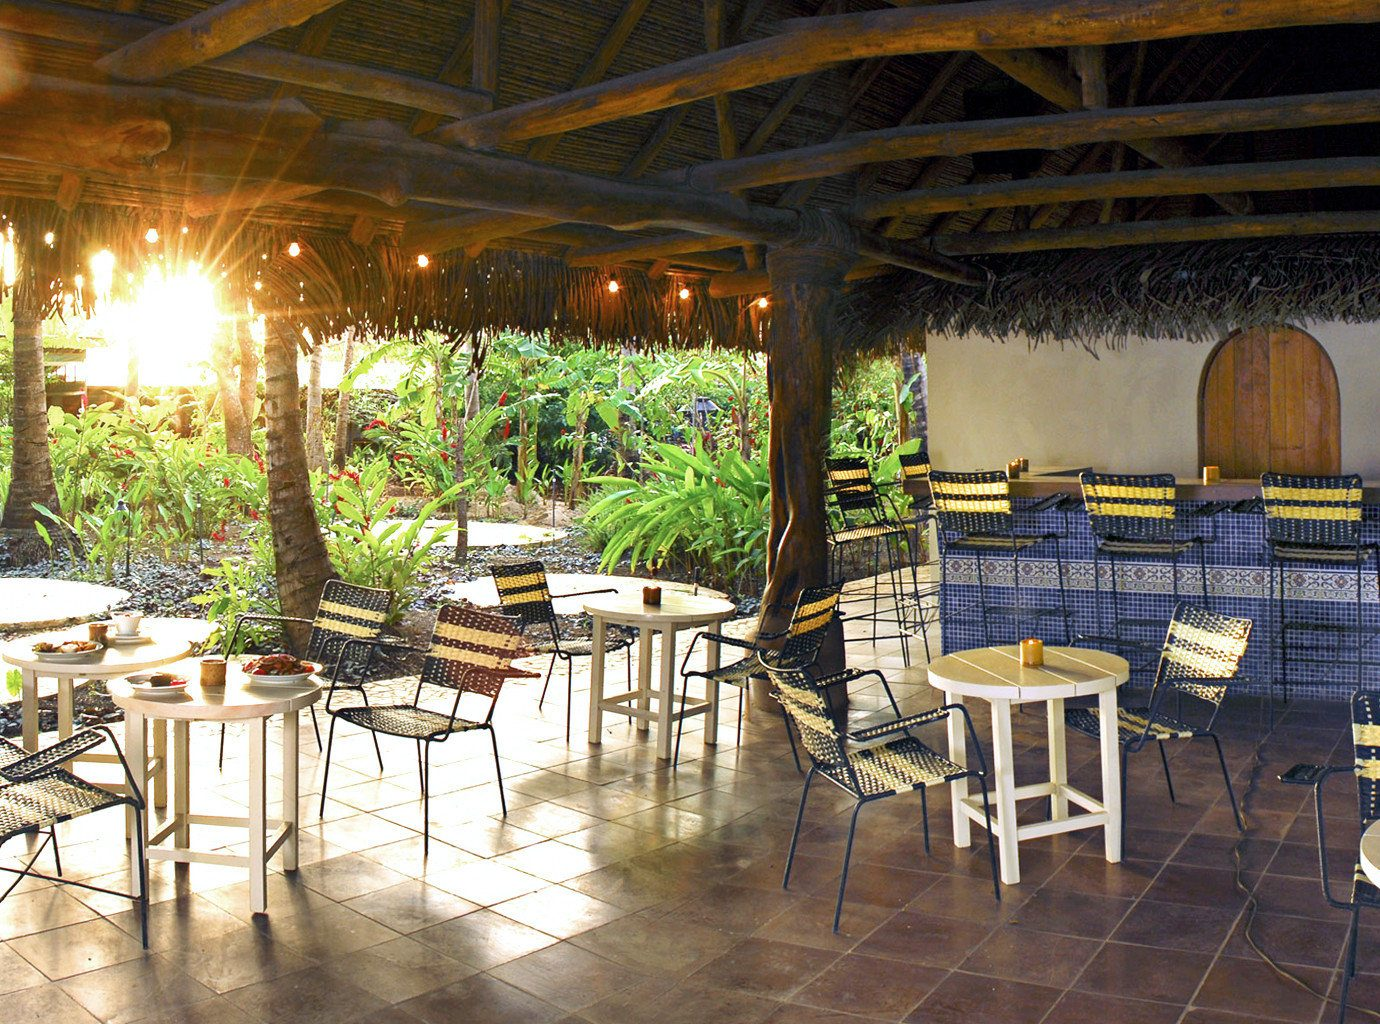 Restaurant at Harmony Hotel in Costa RIca